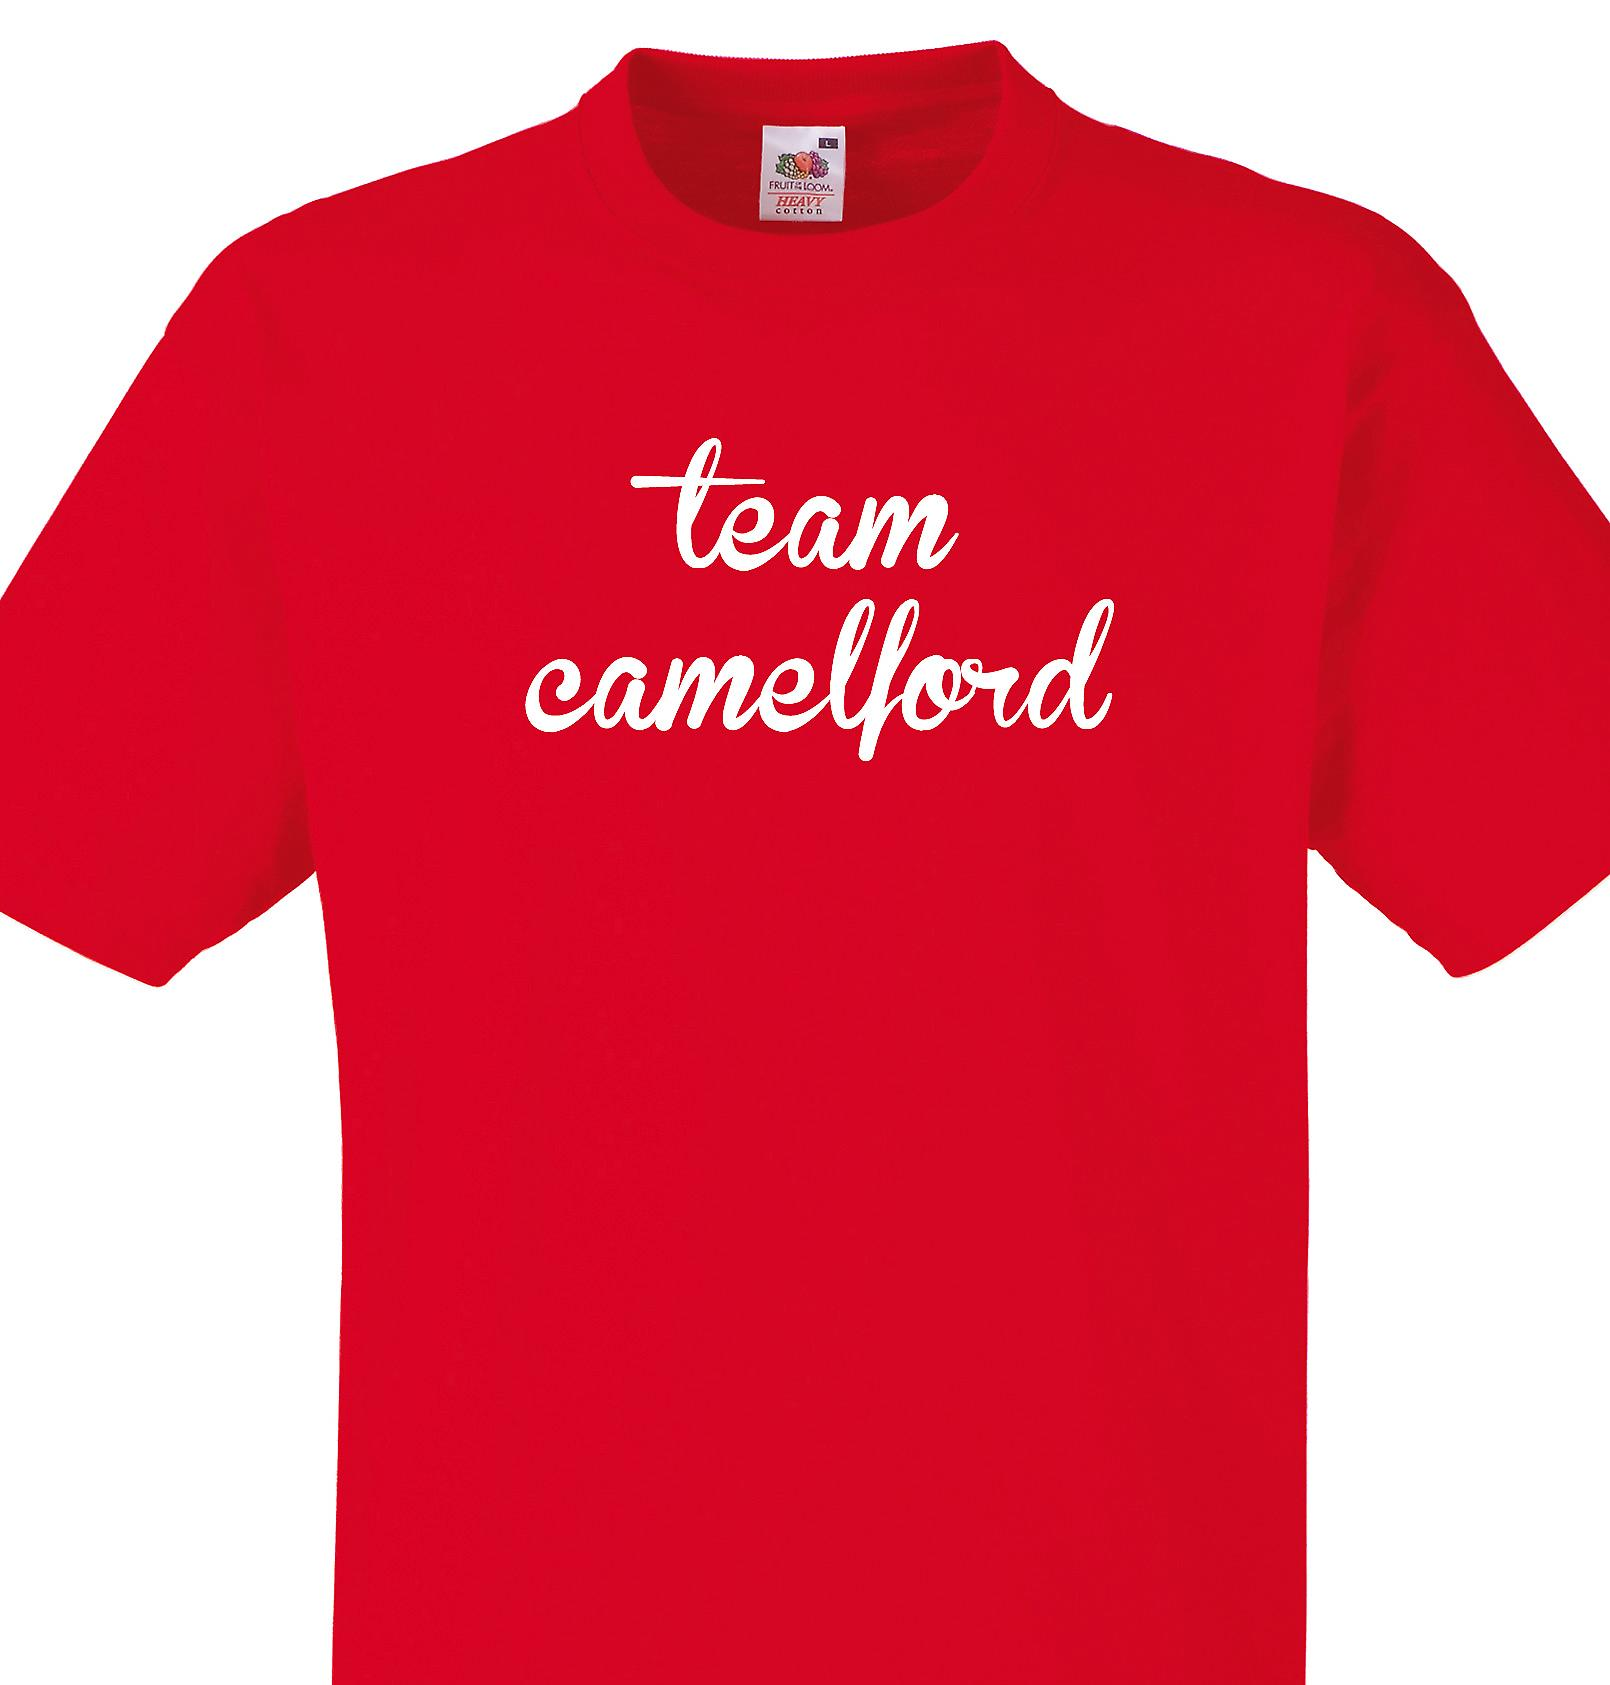 Team Camelford Red T shirt